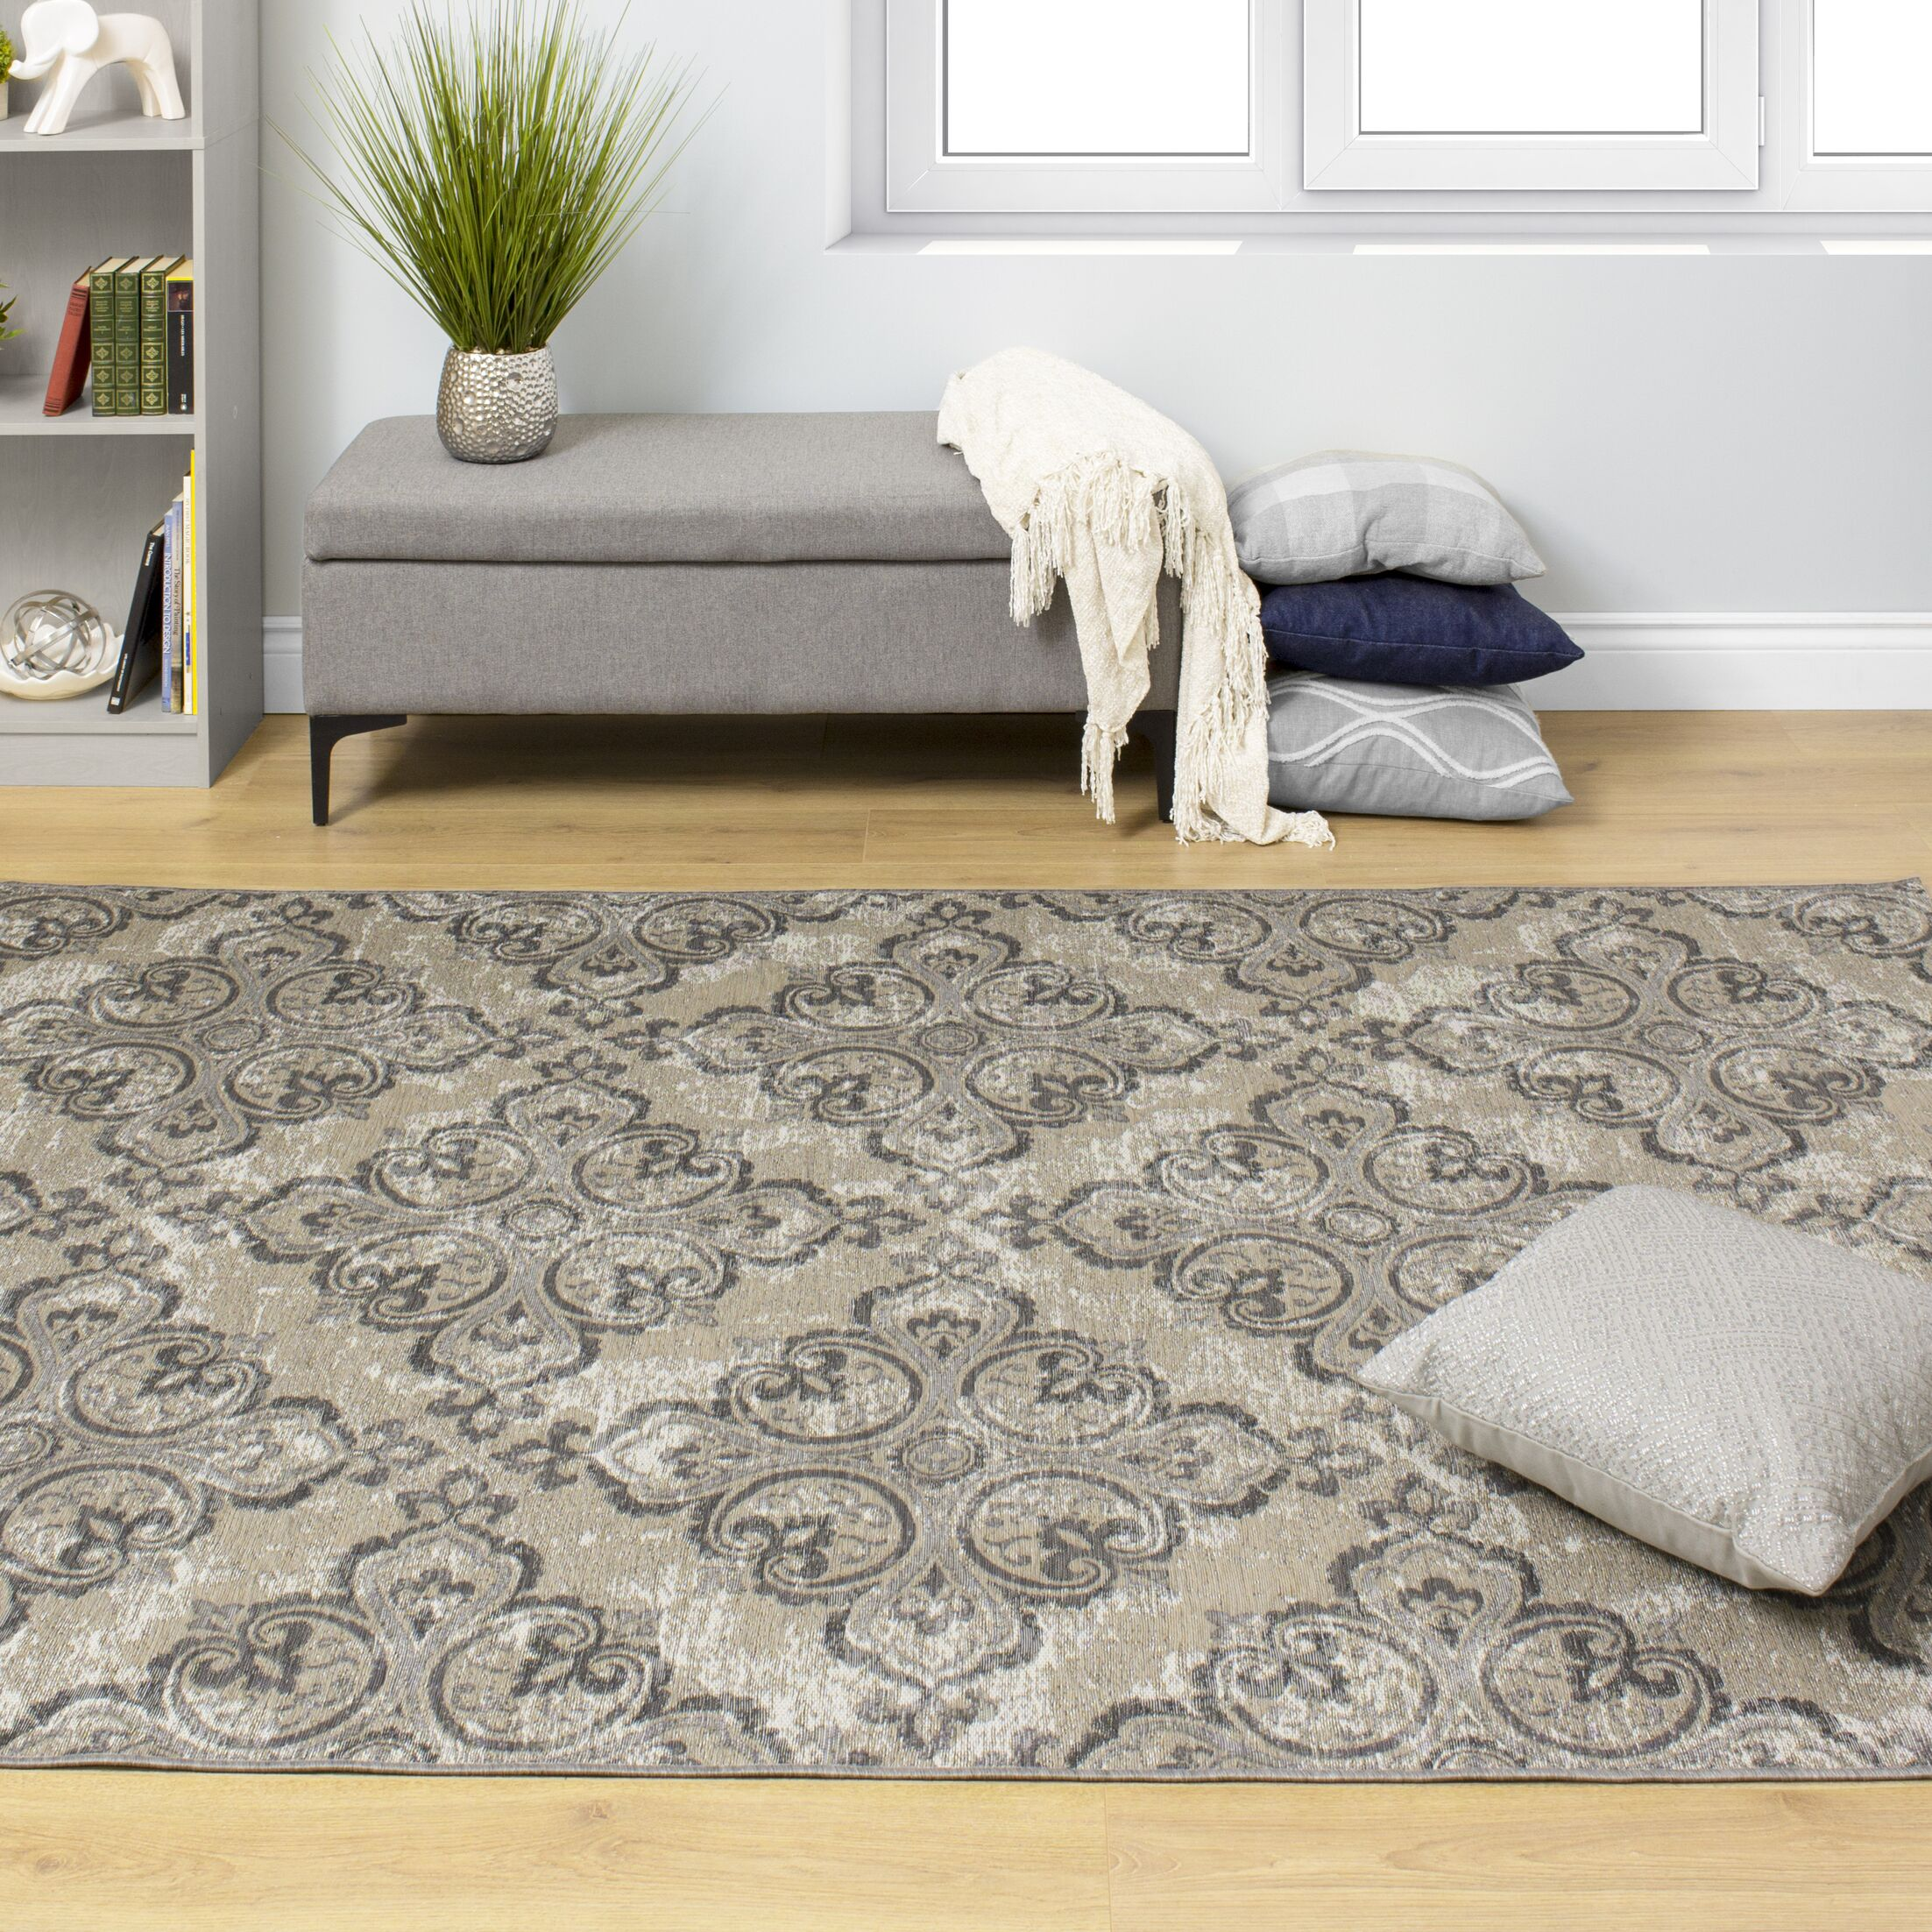 Holden Jacquard Pattern Gray/Beige Indoor/Outdoor Area Rug Rug Size: Rectangle 5'3'' x 7'7''